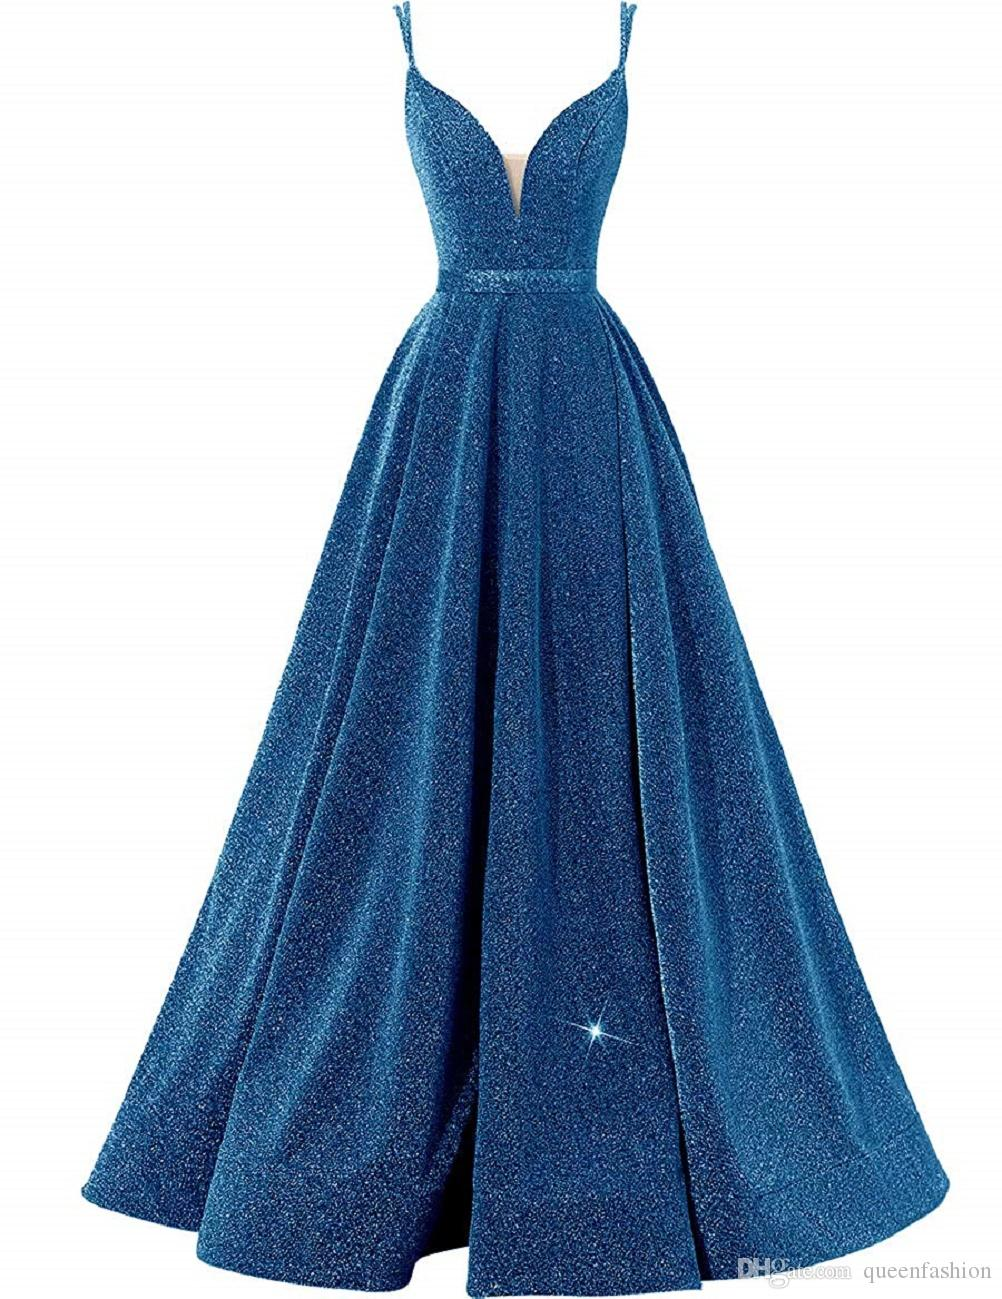 Glittery Side Slit Evening Dress Sexy Deep V-neck Spaghetti Strap Long Prom Dress wiith Pockets High Split Formal Ball Gown Lace up Back